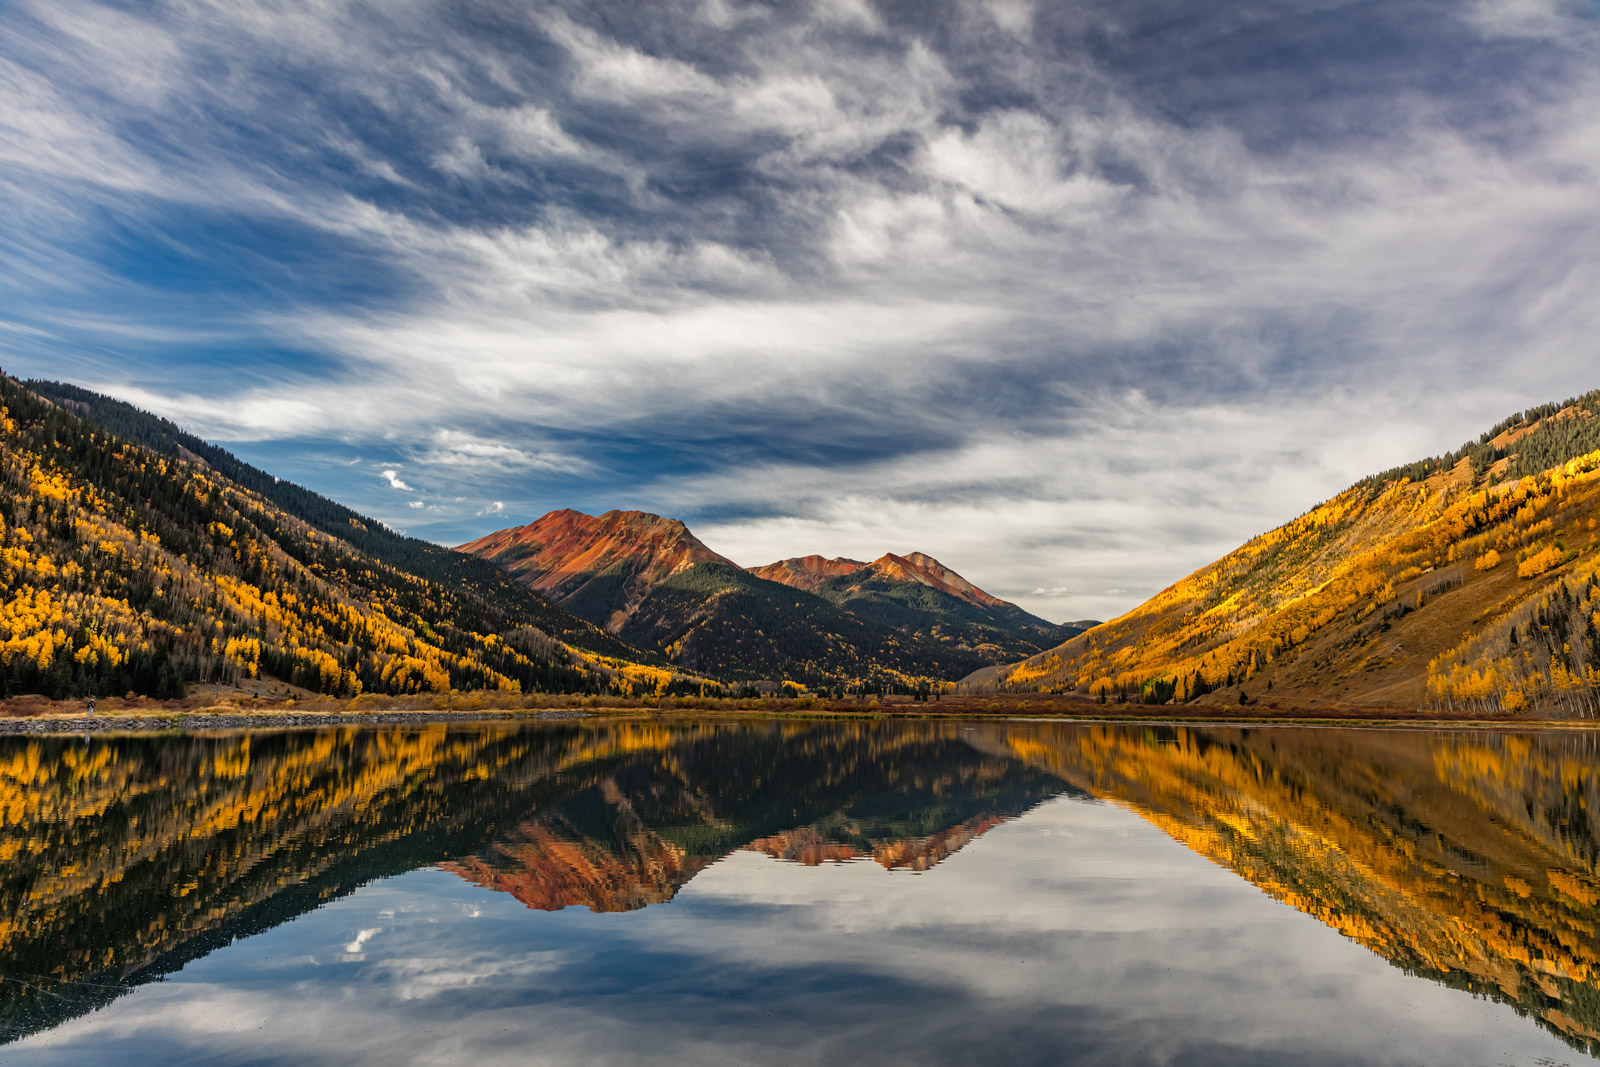 Colorado, Red Mountain, Crystal Lake, Reflection, Fall